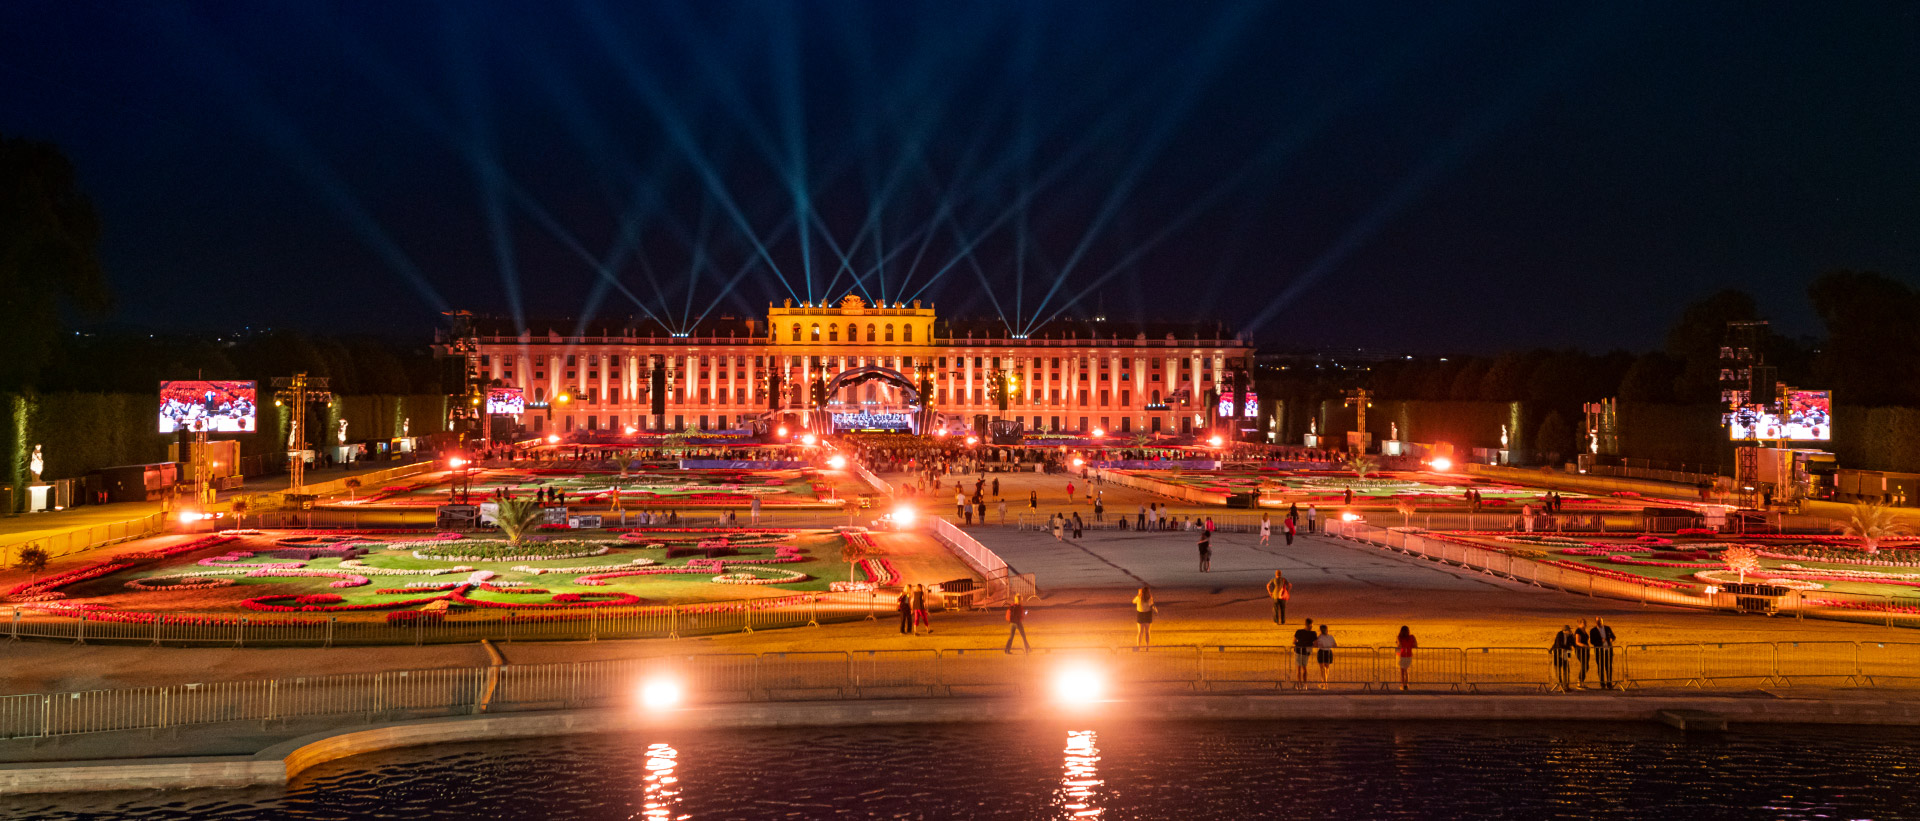 Summer Night Concert: Vienna Philharmonic Orchestra